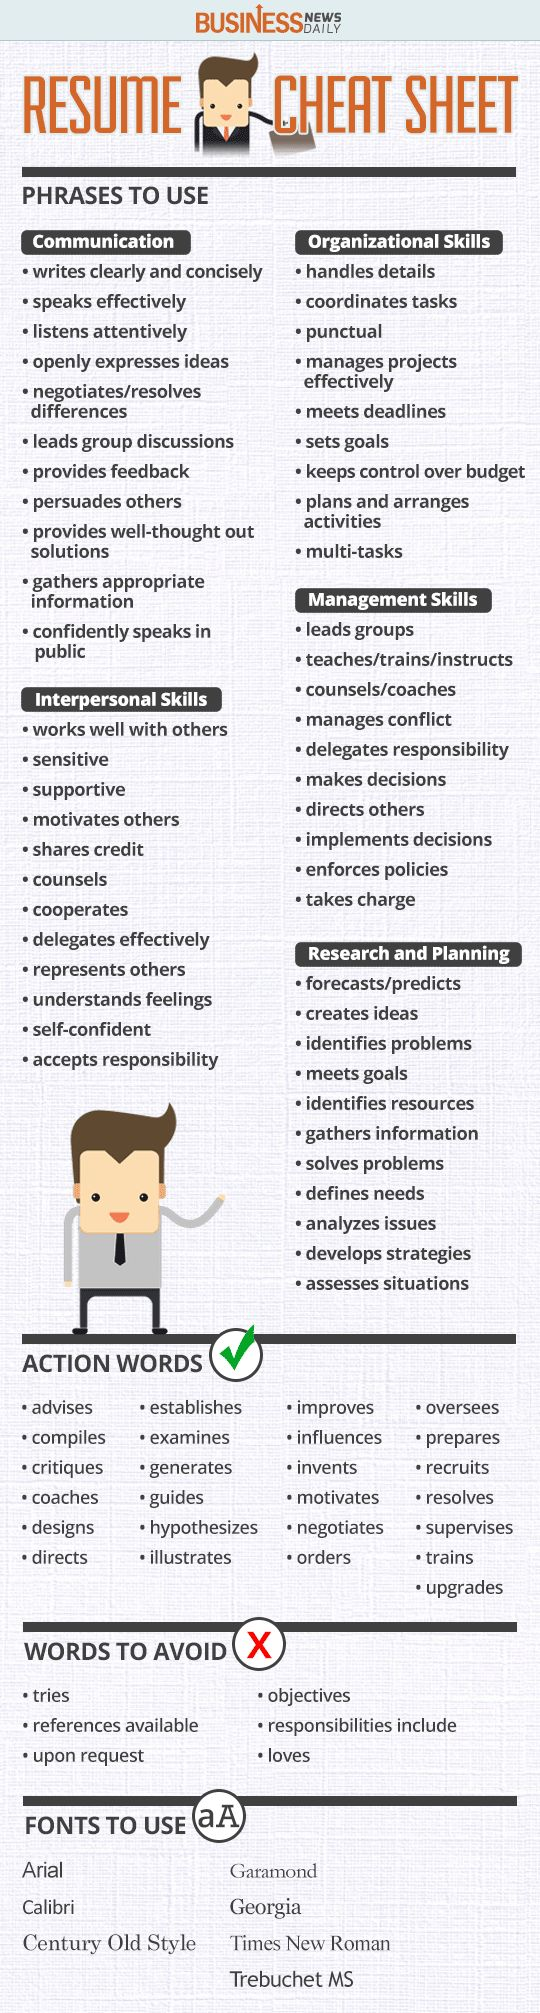 Opposenewapstandardsus  Marvellous  Ideas About Resume On Pinterest  Cv Format Resume Cv And  With Marvelous Resume Cheat Sheet Infographic Andrews Almost Done With A Complete Unit On Employment Which With Beautiful Athletic Resume Also Banking Resume In Addition Resume Now Review And Graphic Designer Resumes As Well As Print Resume Additionally Writing A Cover Letter For A Resume From Pinterestcom With Opposenewapstandardsus  Marvelous  Ideas About Resume On Pinterest  Cv Format Resume Cv And  With Beautiful Resume Cheat Sheet Infographic Andrews Almost Done With A Complete Unit On Employment Which And Marvellous Athletic Resume Also Banking Resume In Addition Resume Now Review From Pinterestcom